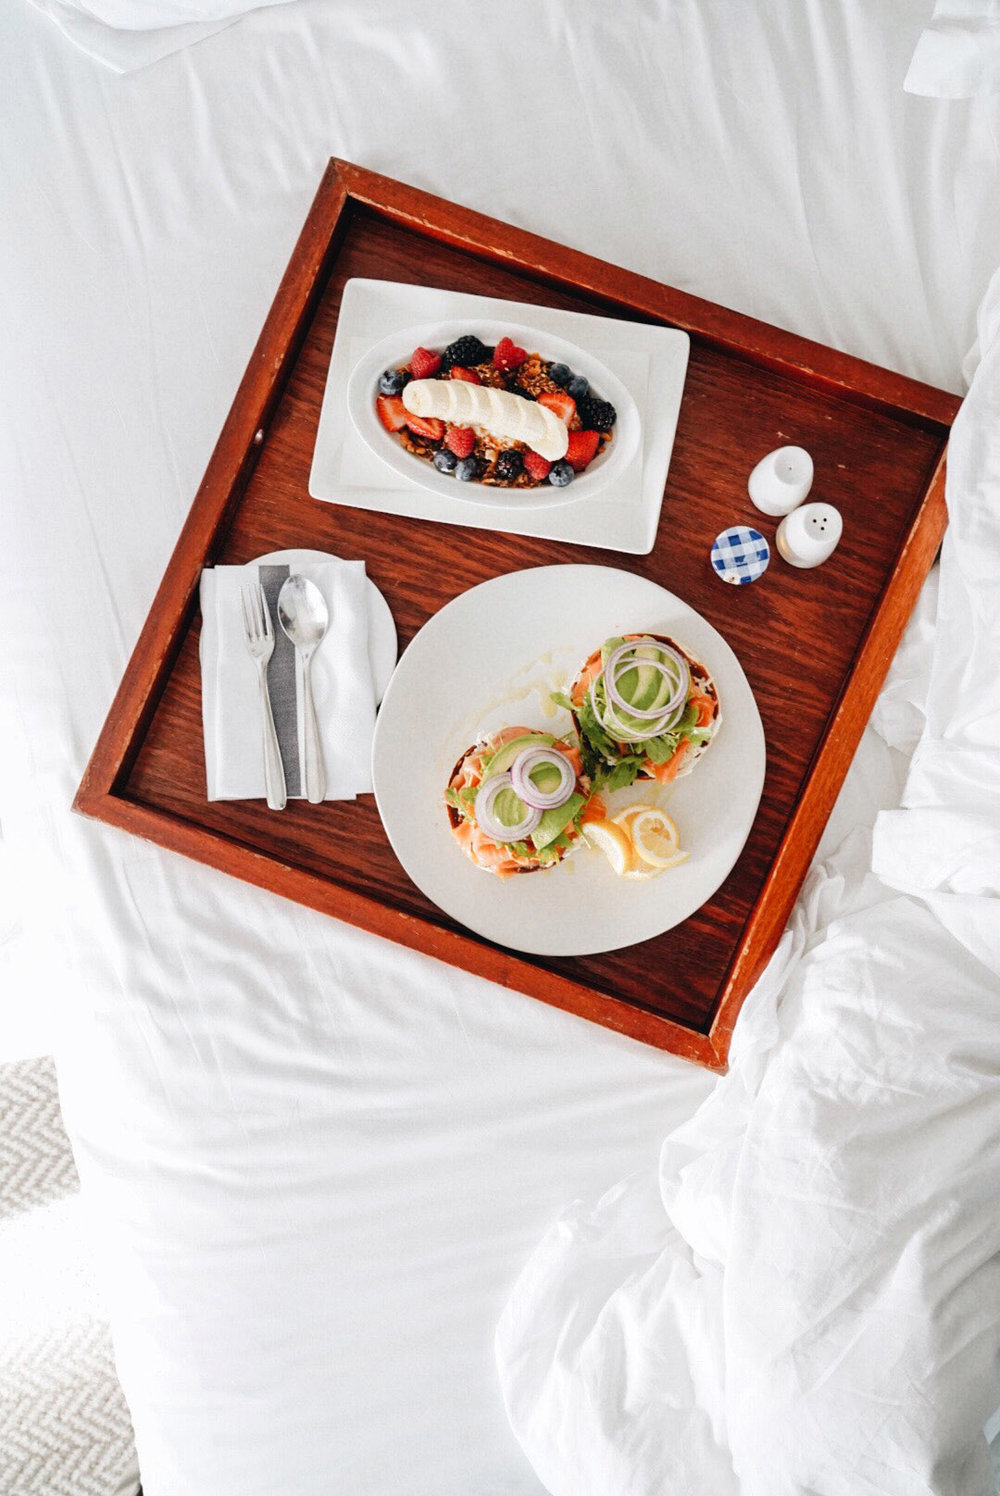 Breakfast in Bed before departure